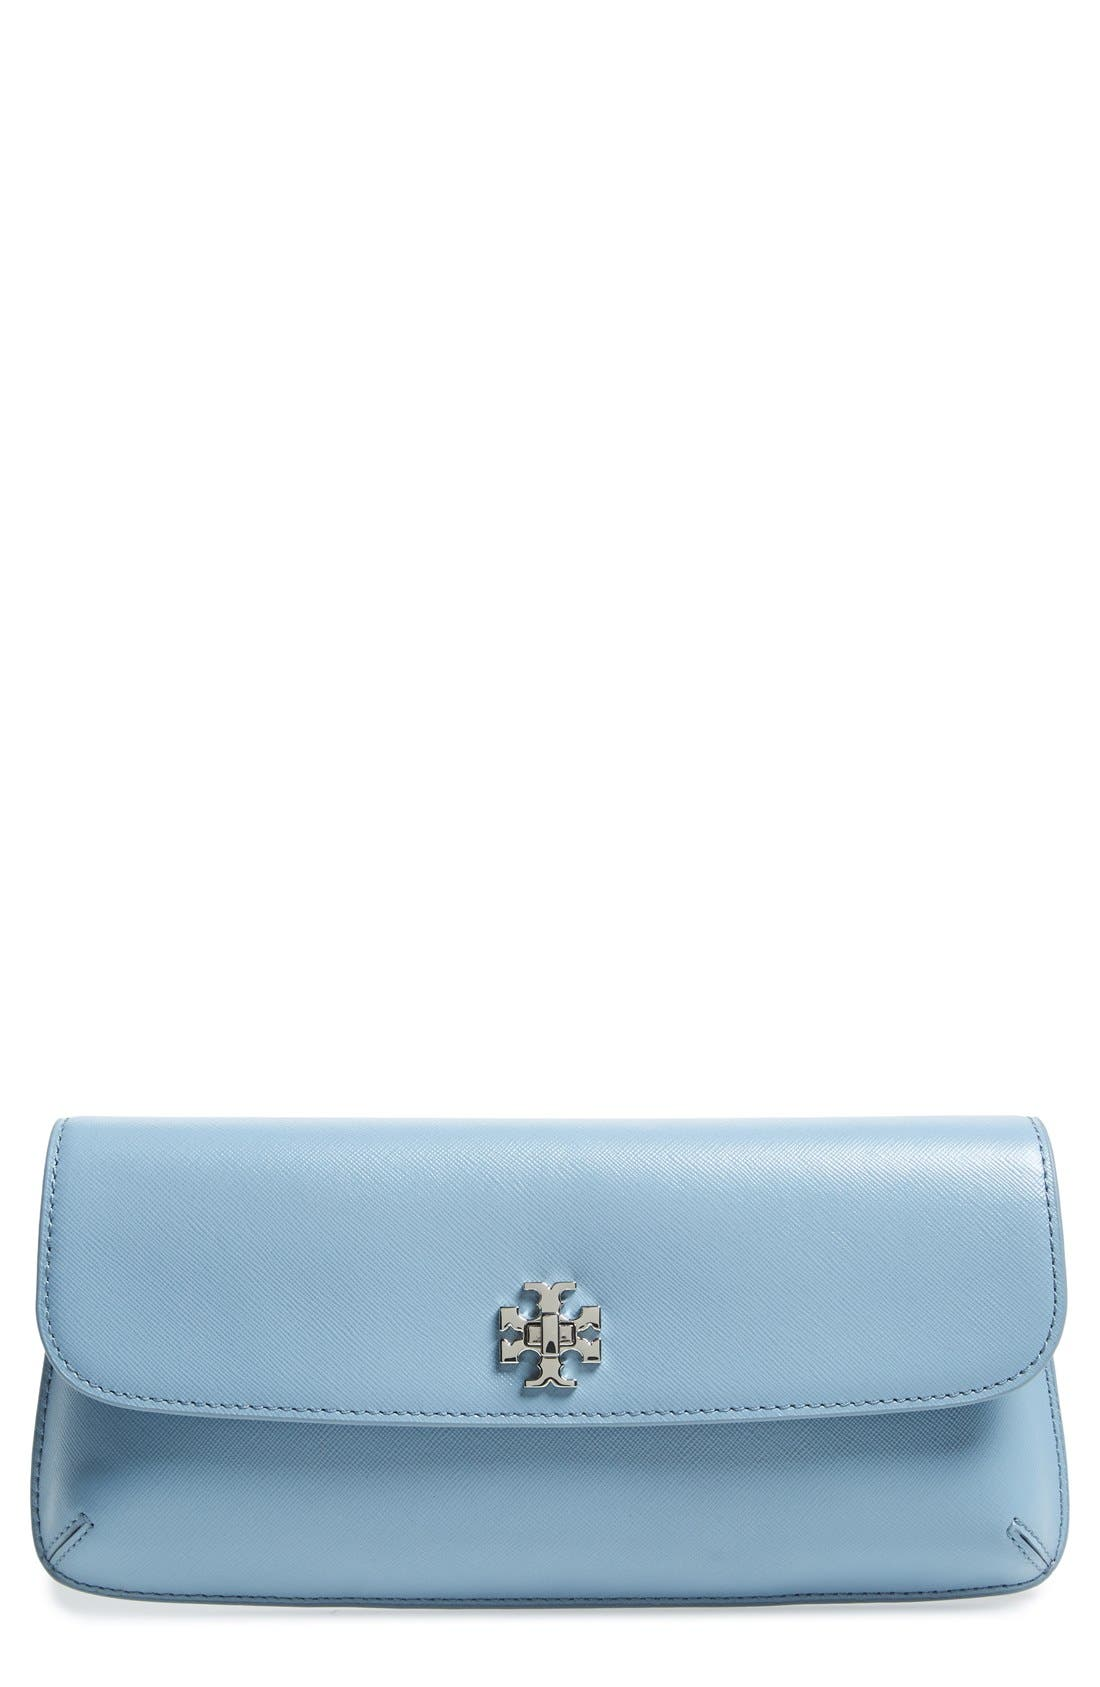 Main Image - Tory Burch 'Slim Diana' Saffiano Leather Flap Clutch